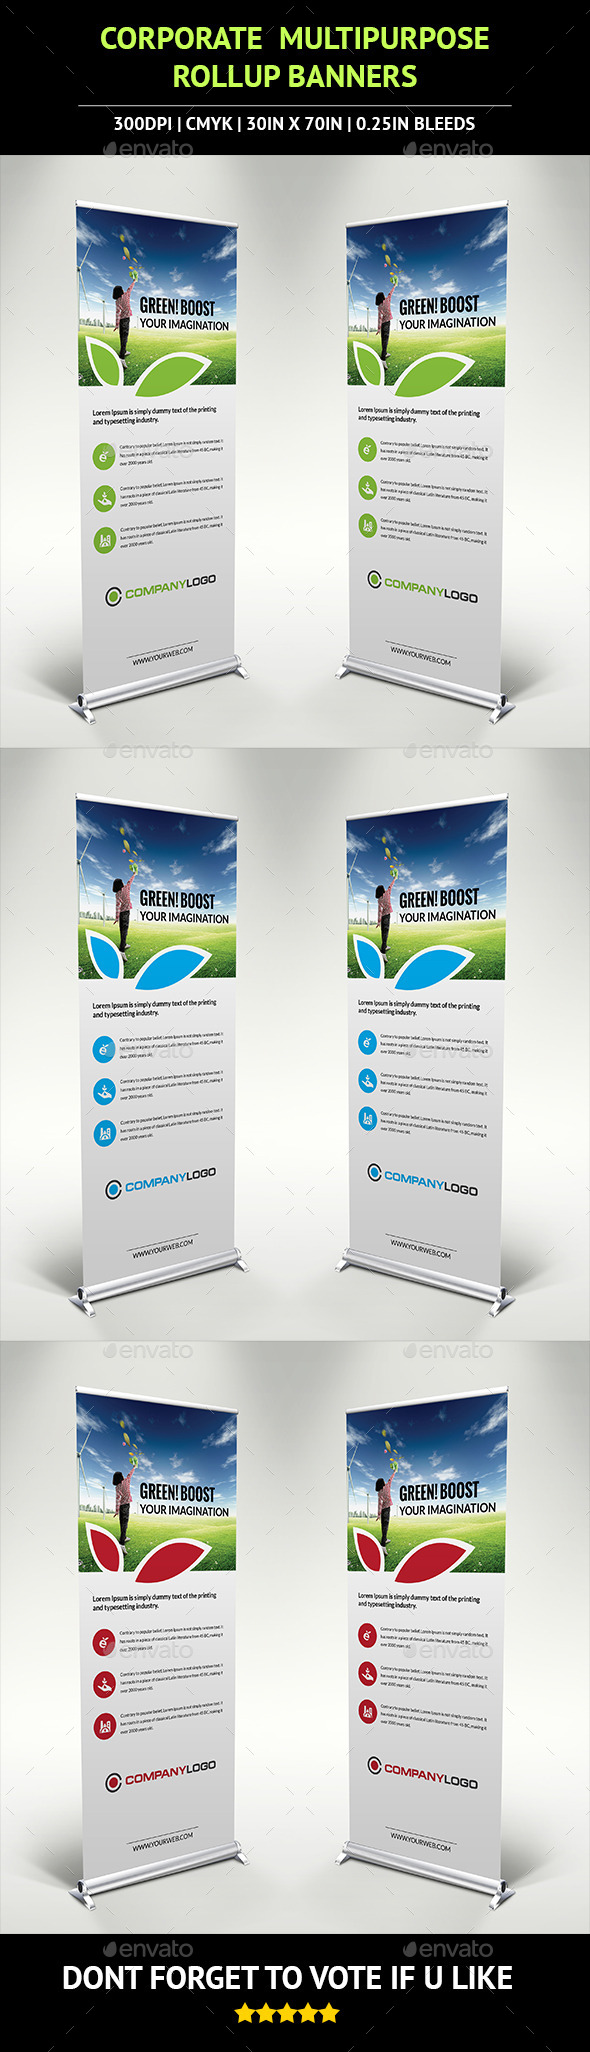 Corporate Rollup Banner v3 - Signage Print Templates